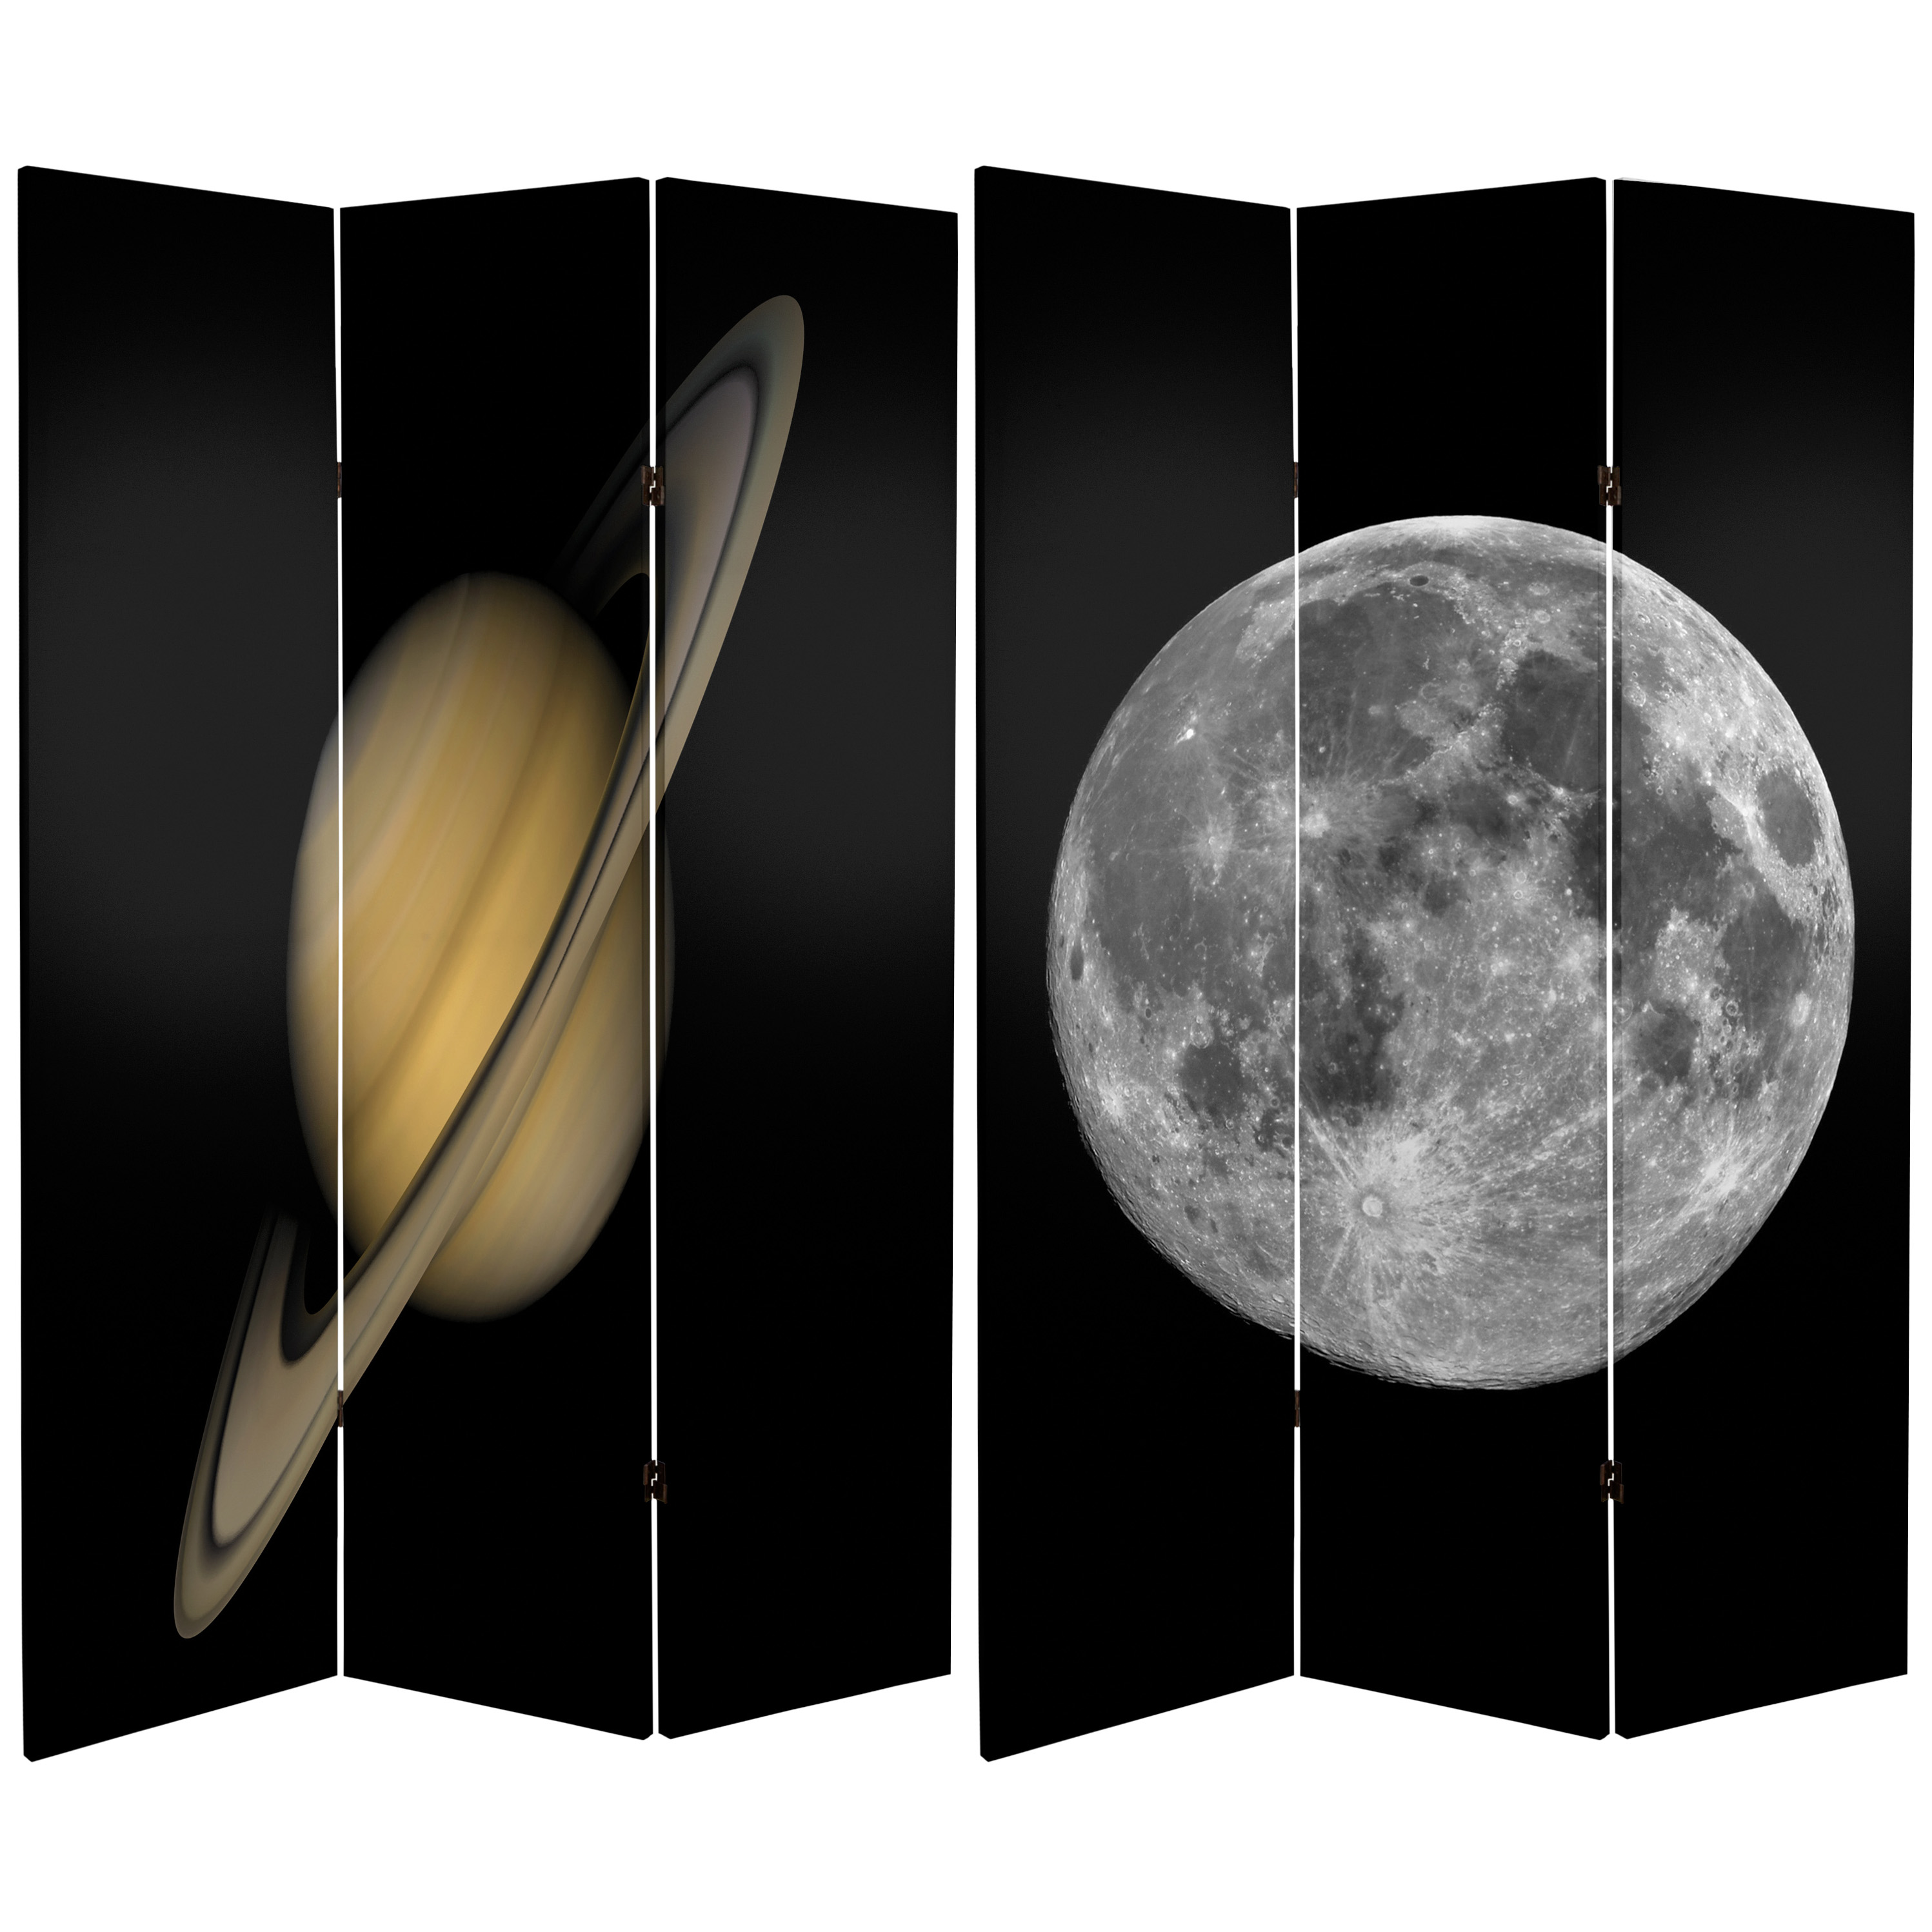 Buy 6 Ft Tall Moon Saturn Room Divider Online Can Moon1